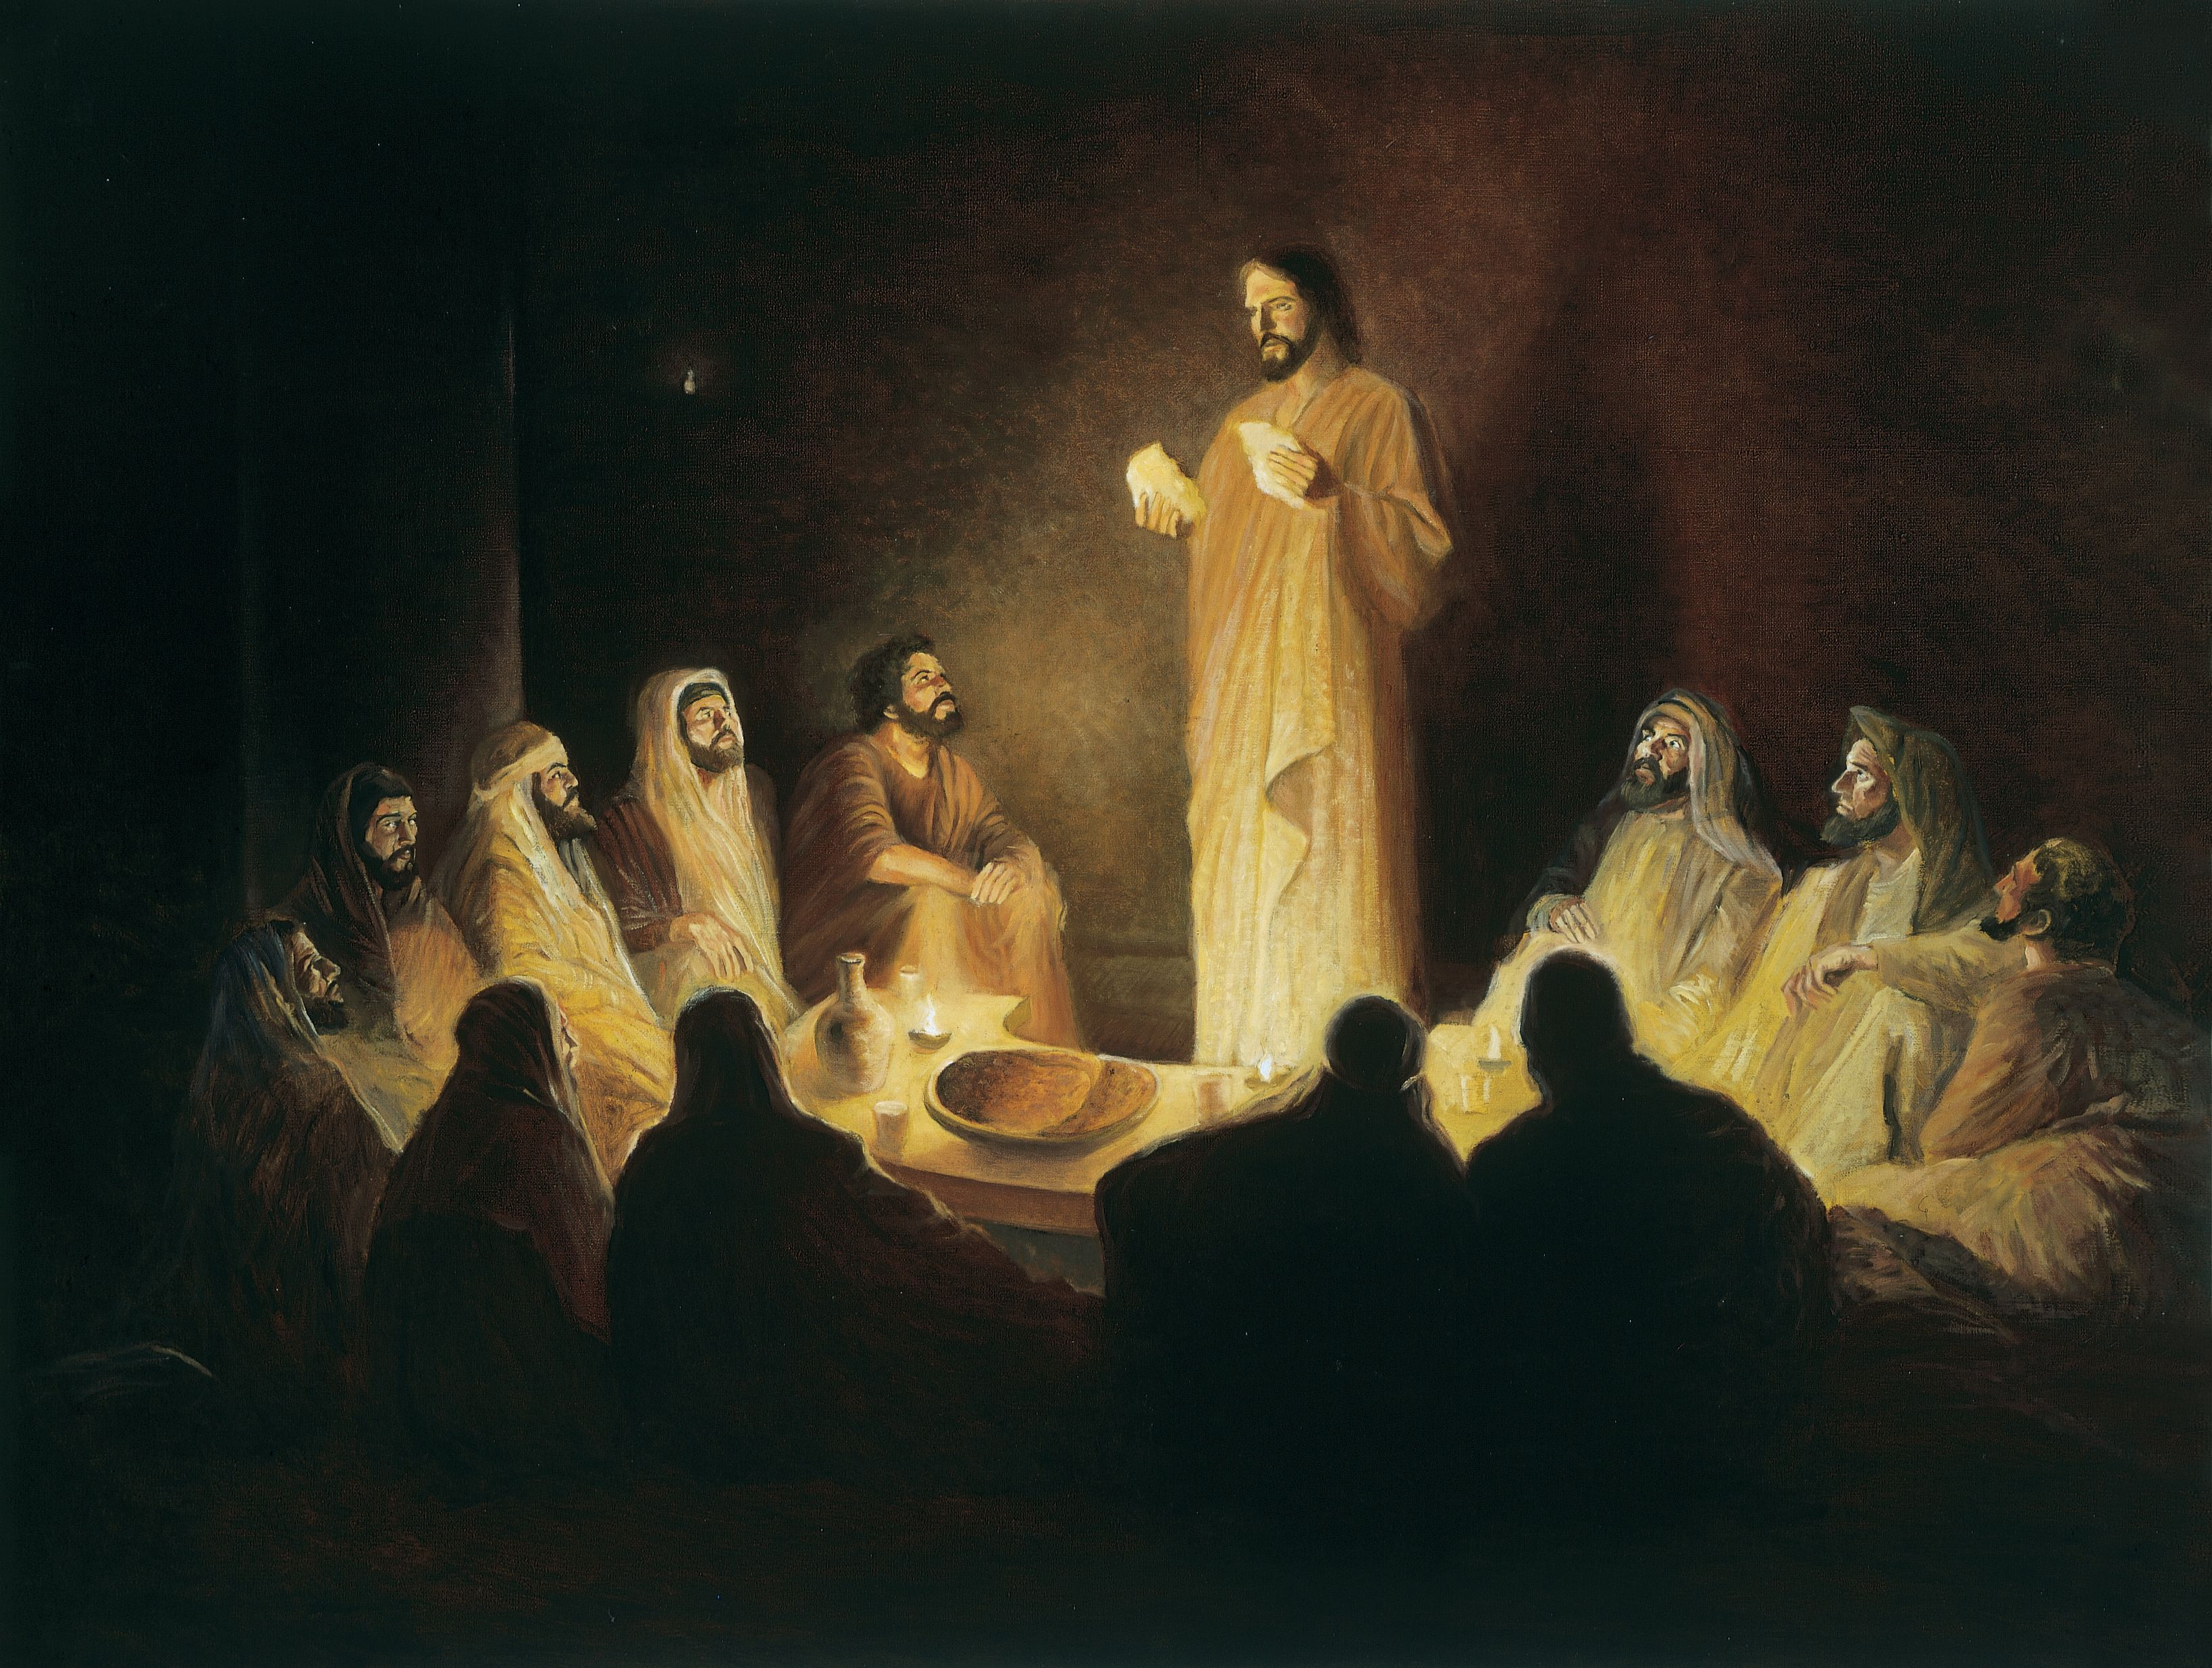 Jesus Institutes the Sacrament, by Gary E. Smith